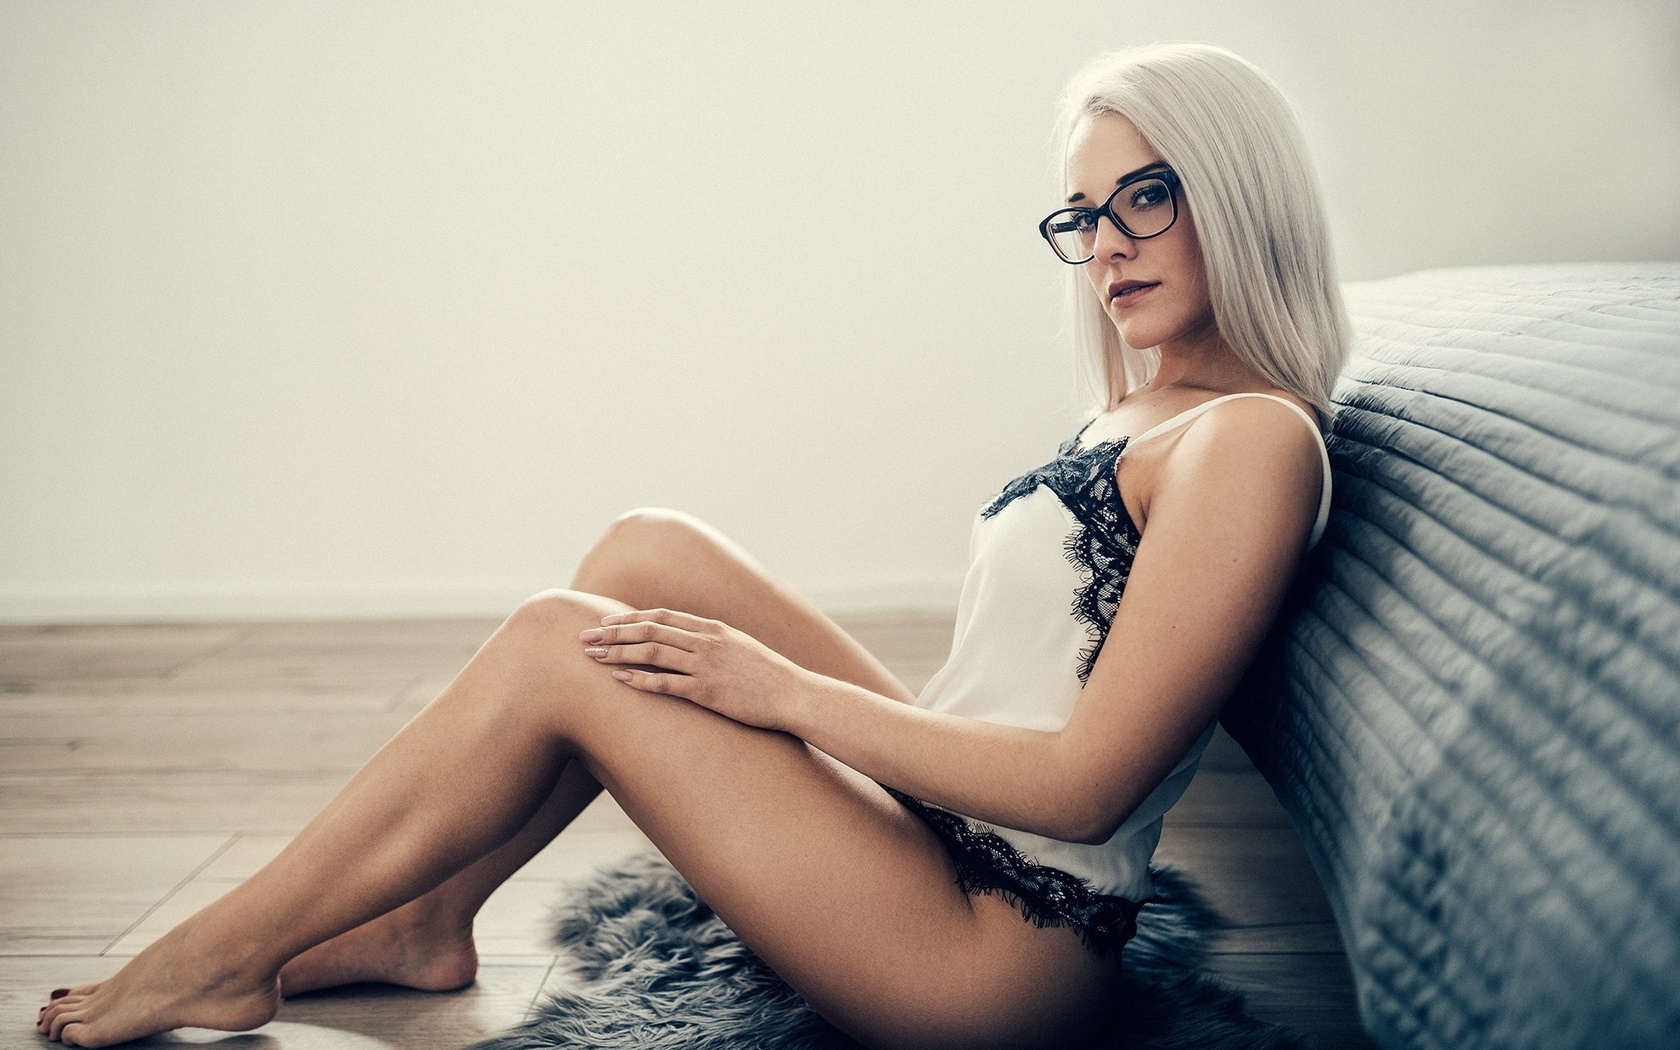 Hot blonde girl with glasses